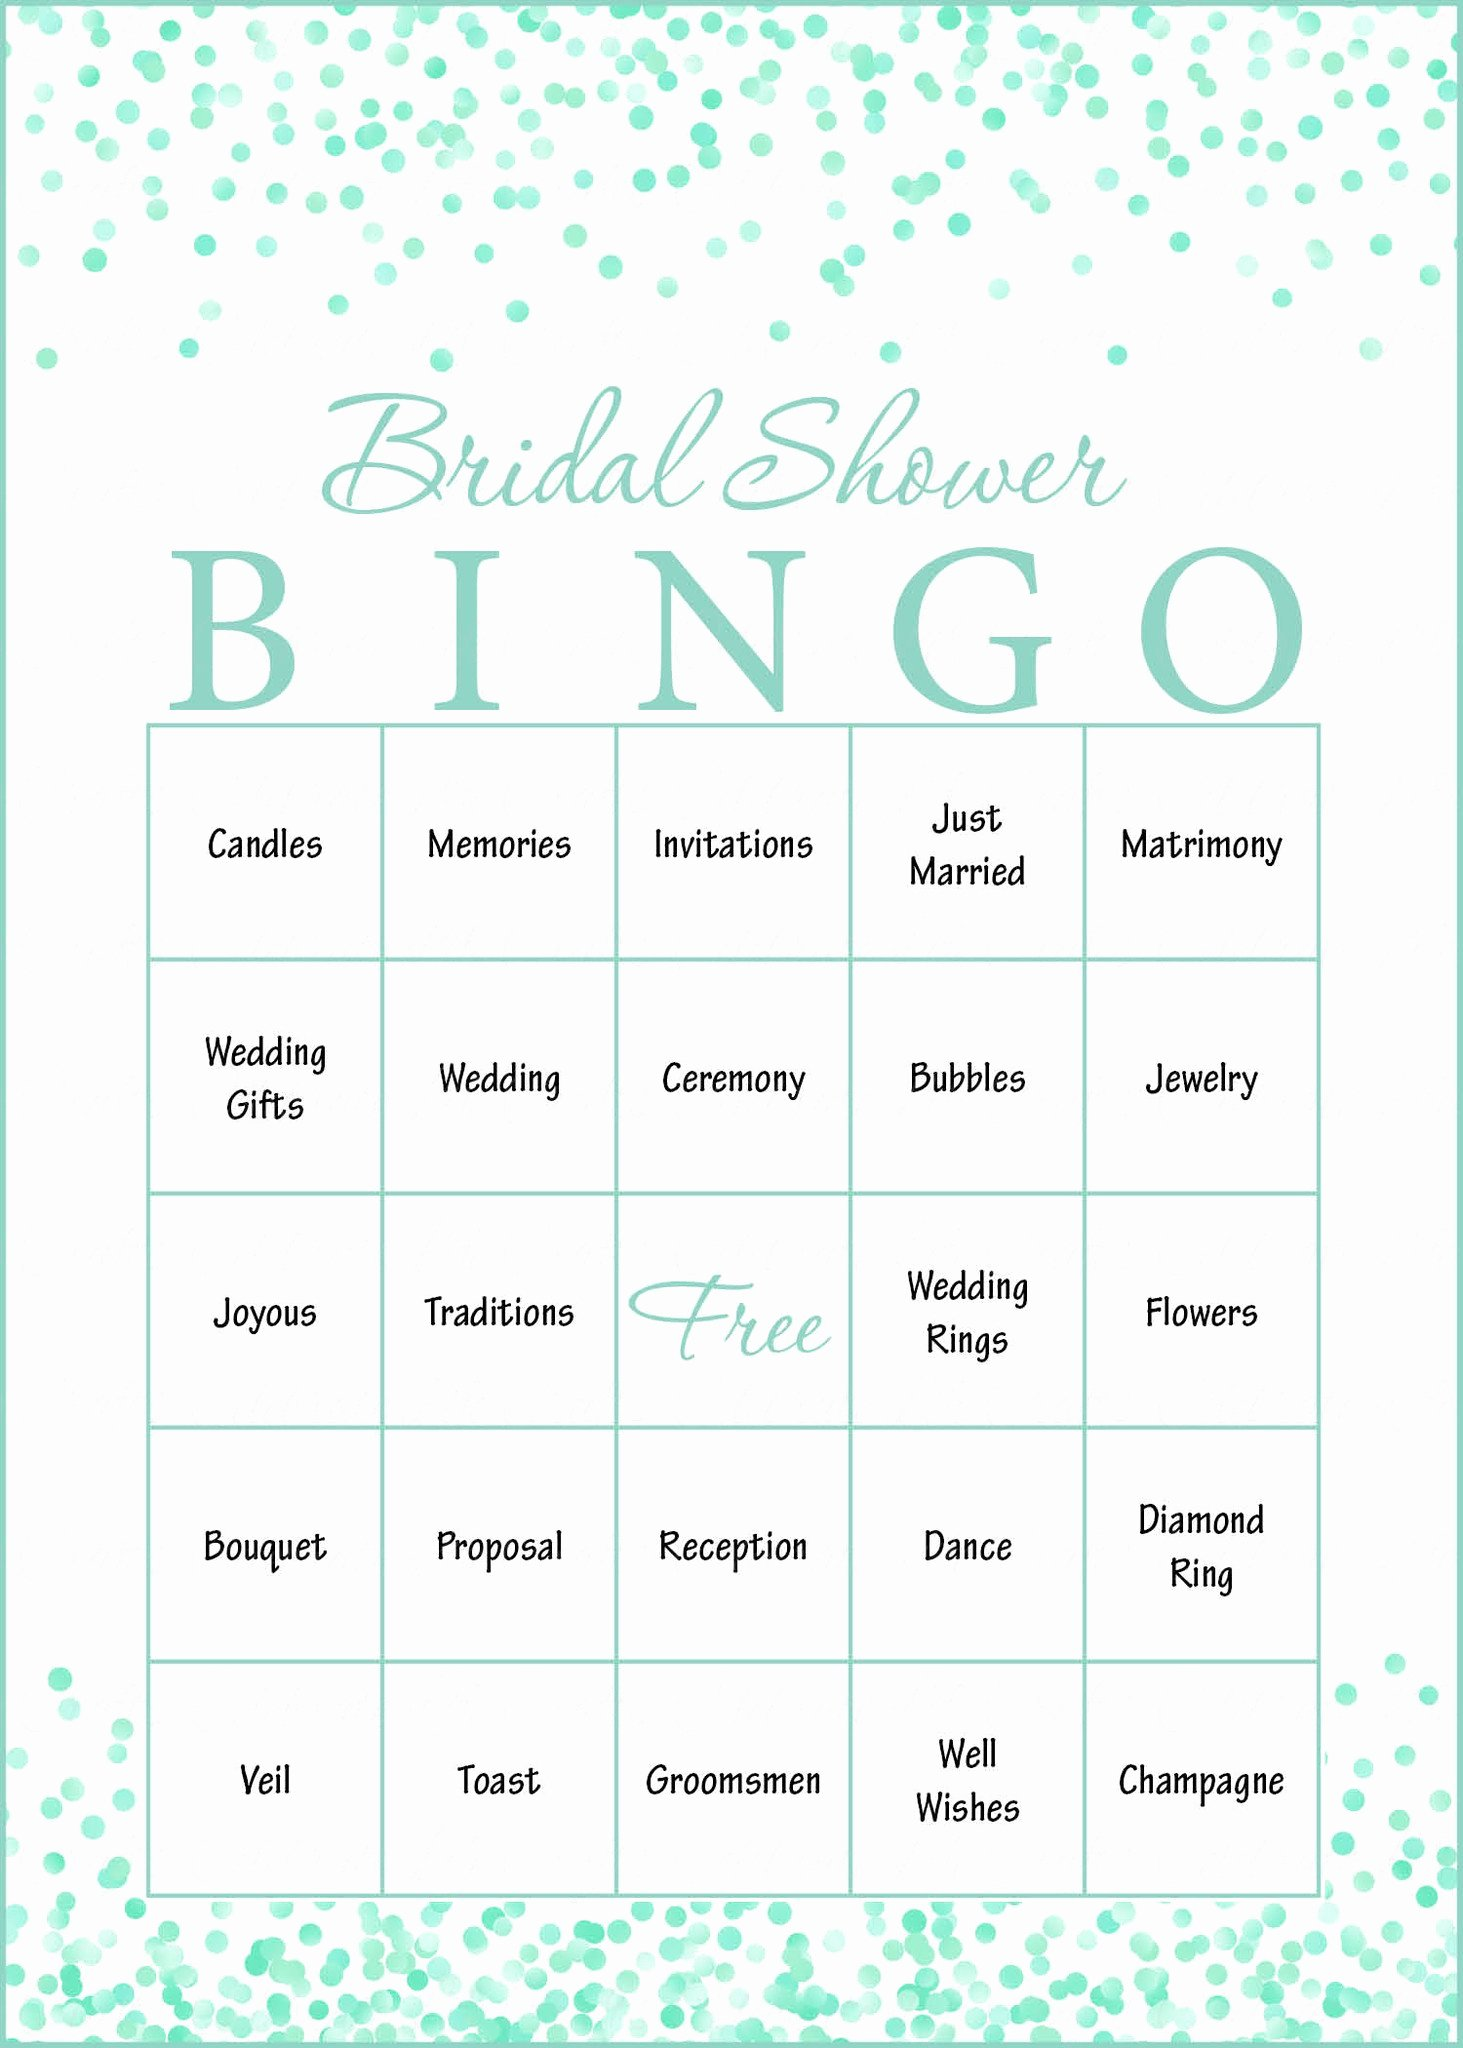 Bridal Shower Bingo Template Free Awesome Mint Confetti Bridal Shower Game Download for Wedding